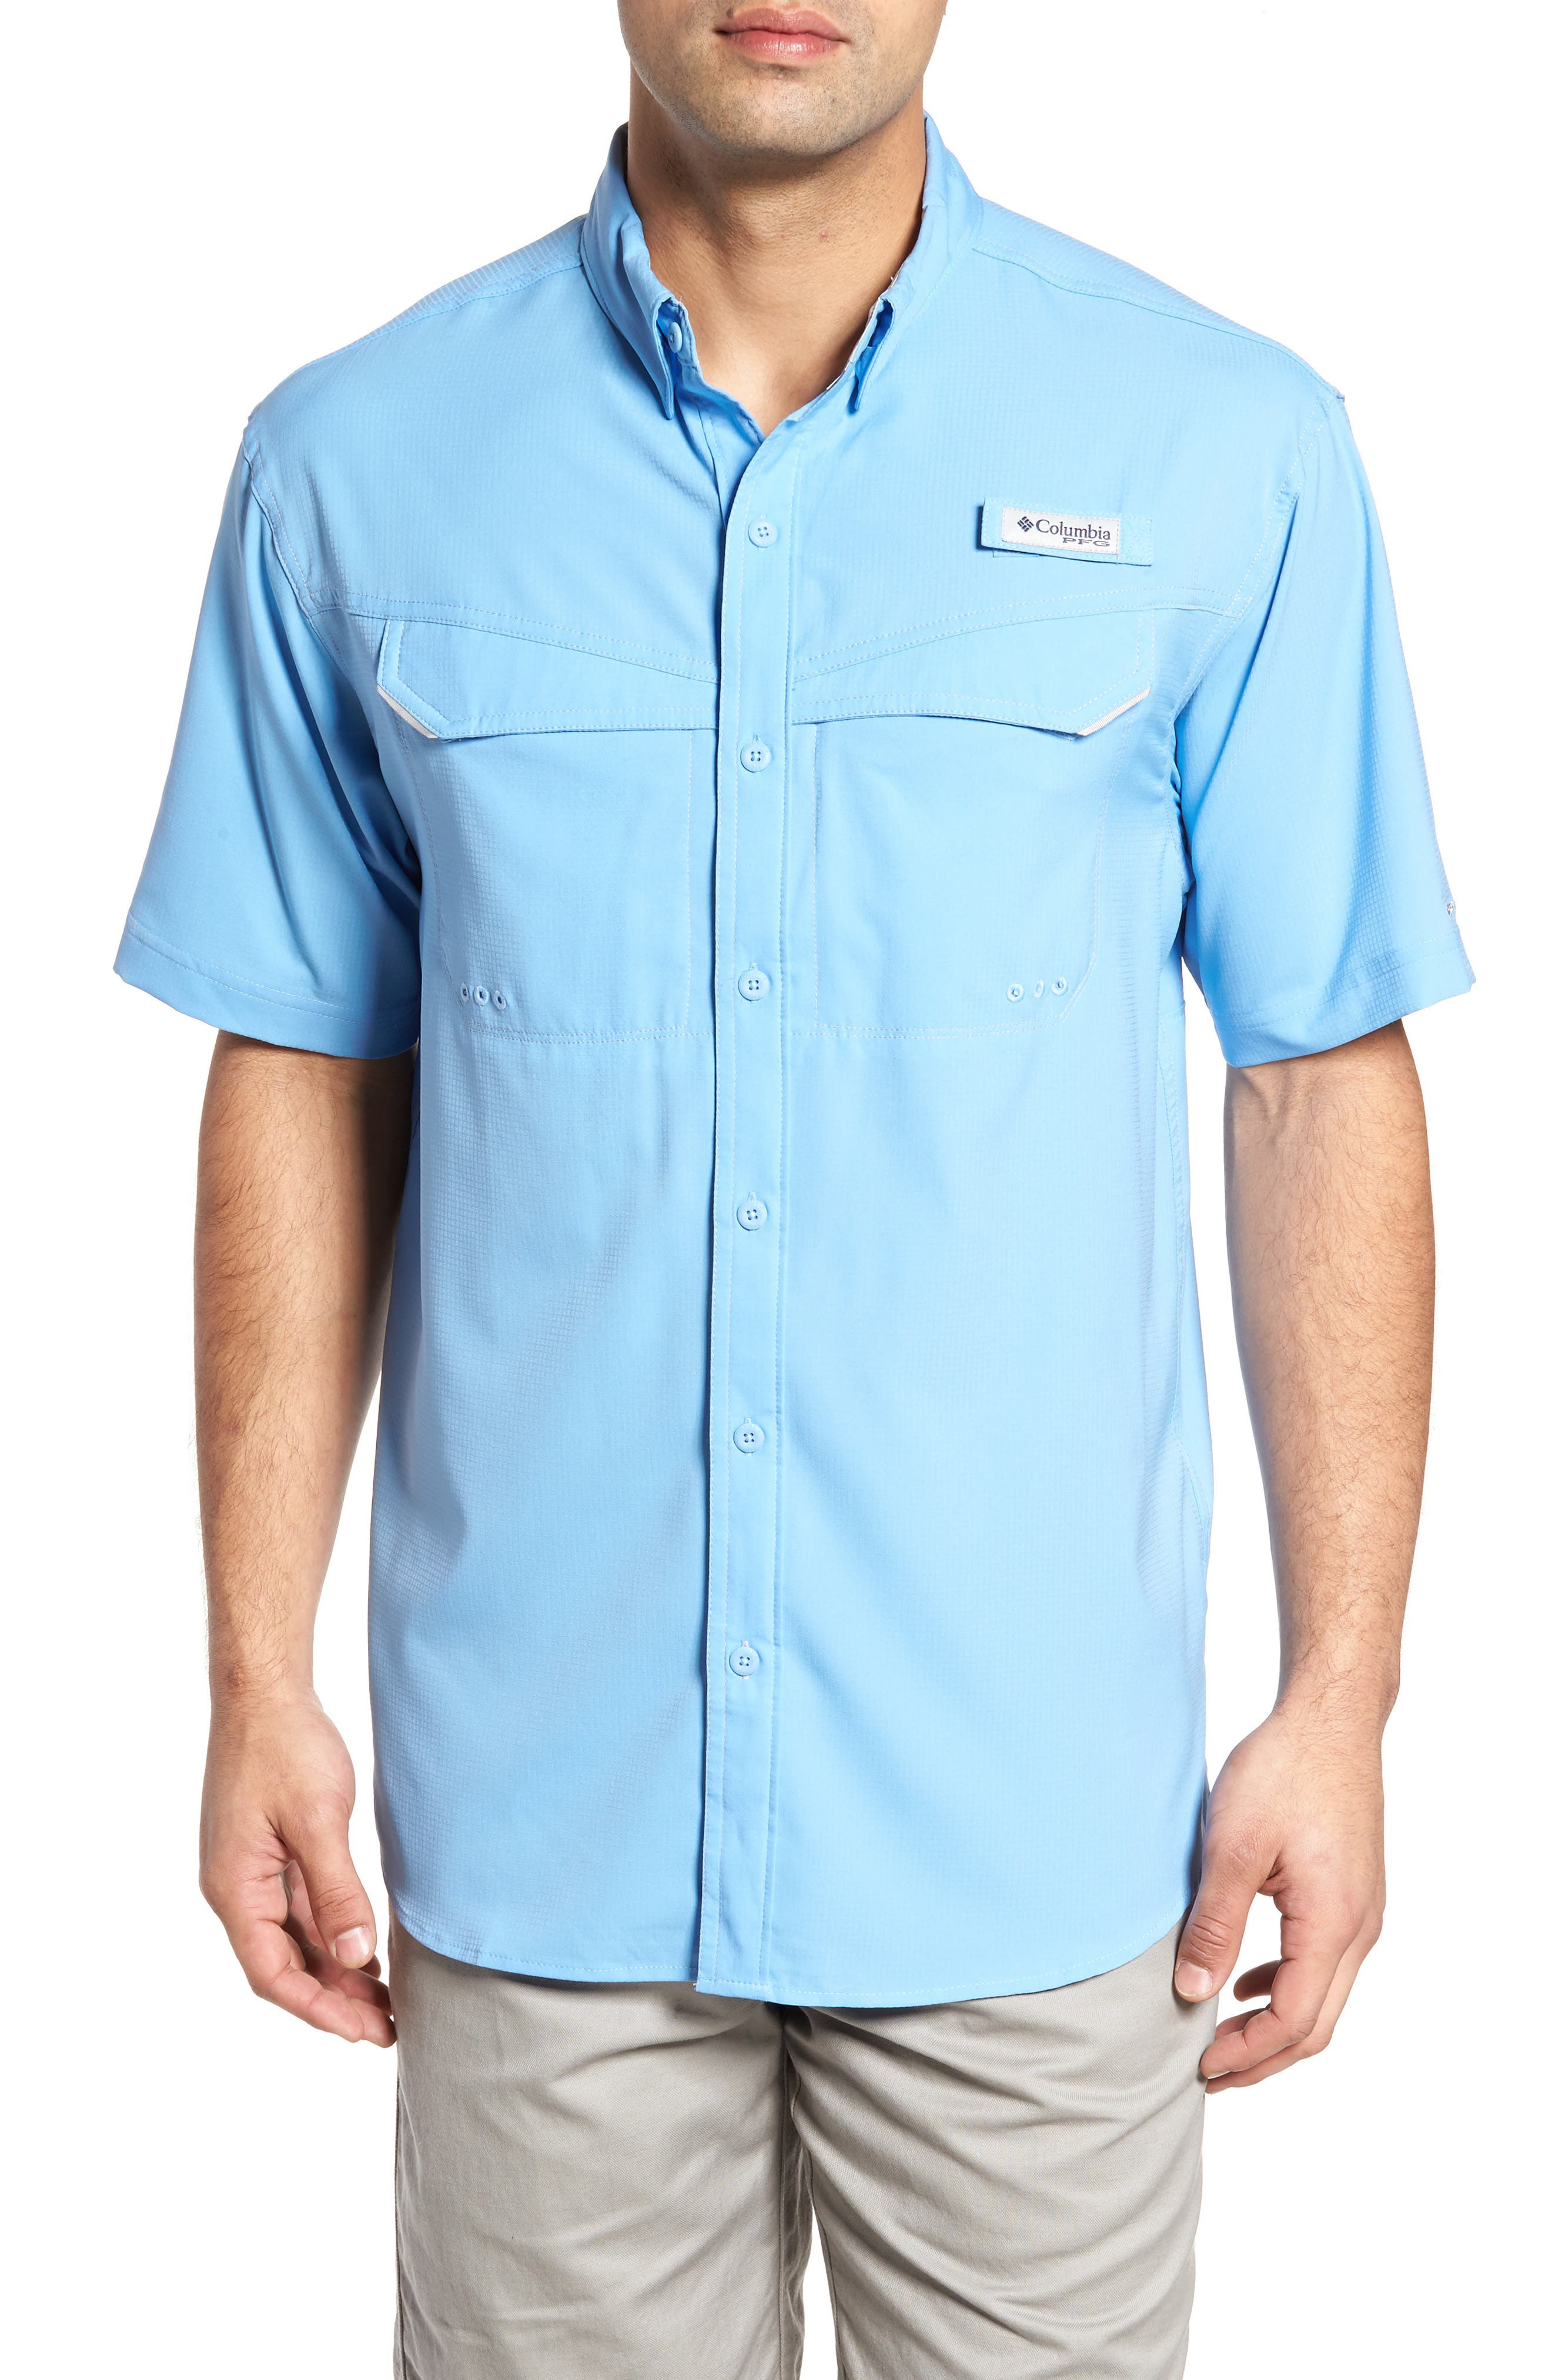 PFG Low Drag Offshore Woven Shirt,                         Main,                         color,